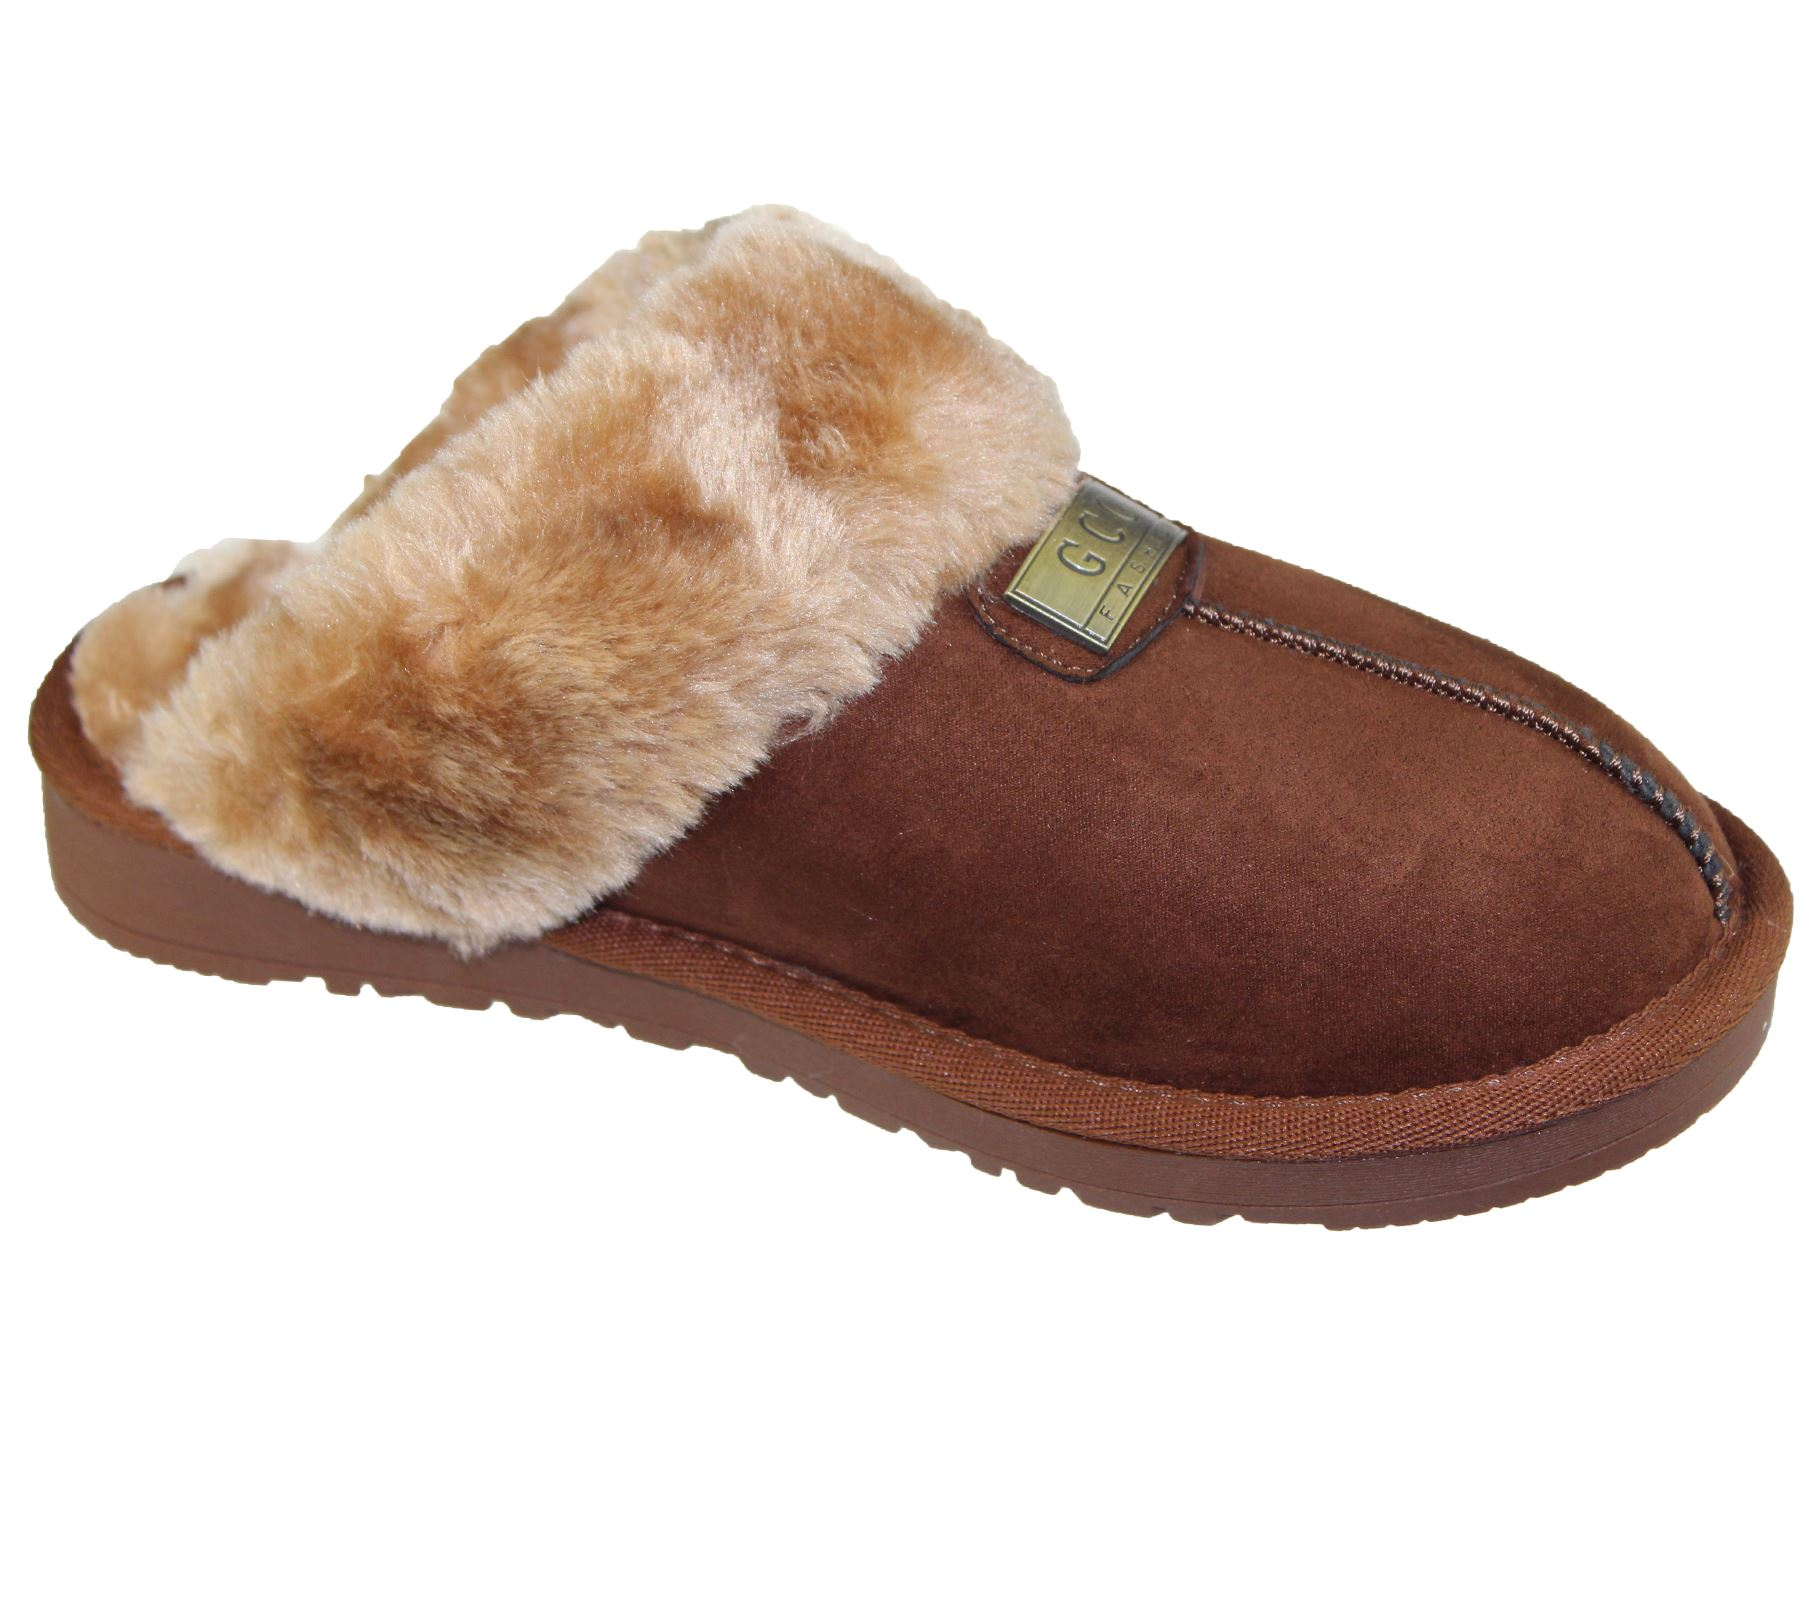 Womens-Fur-Lined-Slippers-Ladies-Mules-Non-Slip-Rubber-Sole-Shoes miniatura 13